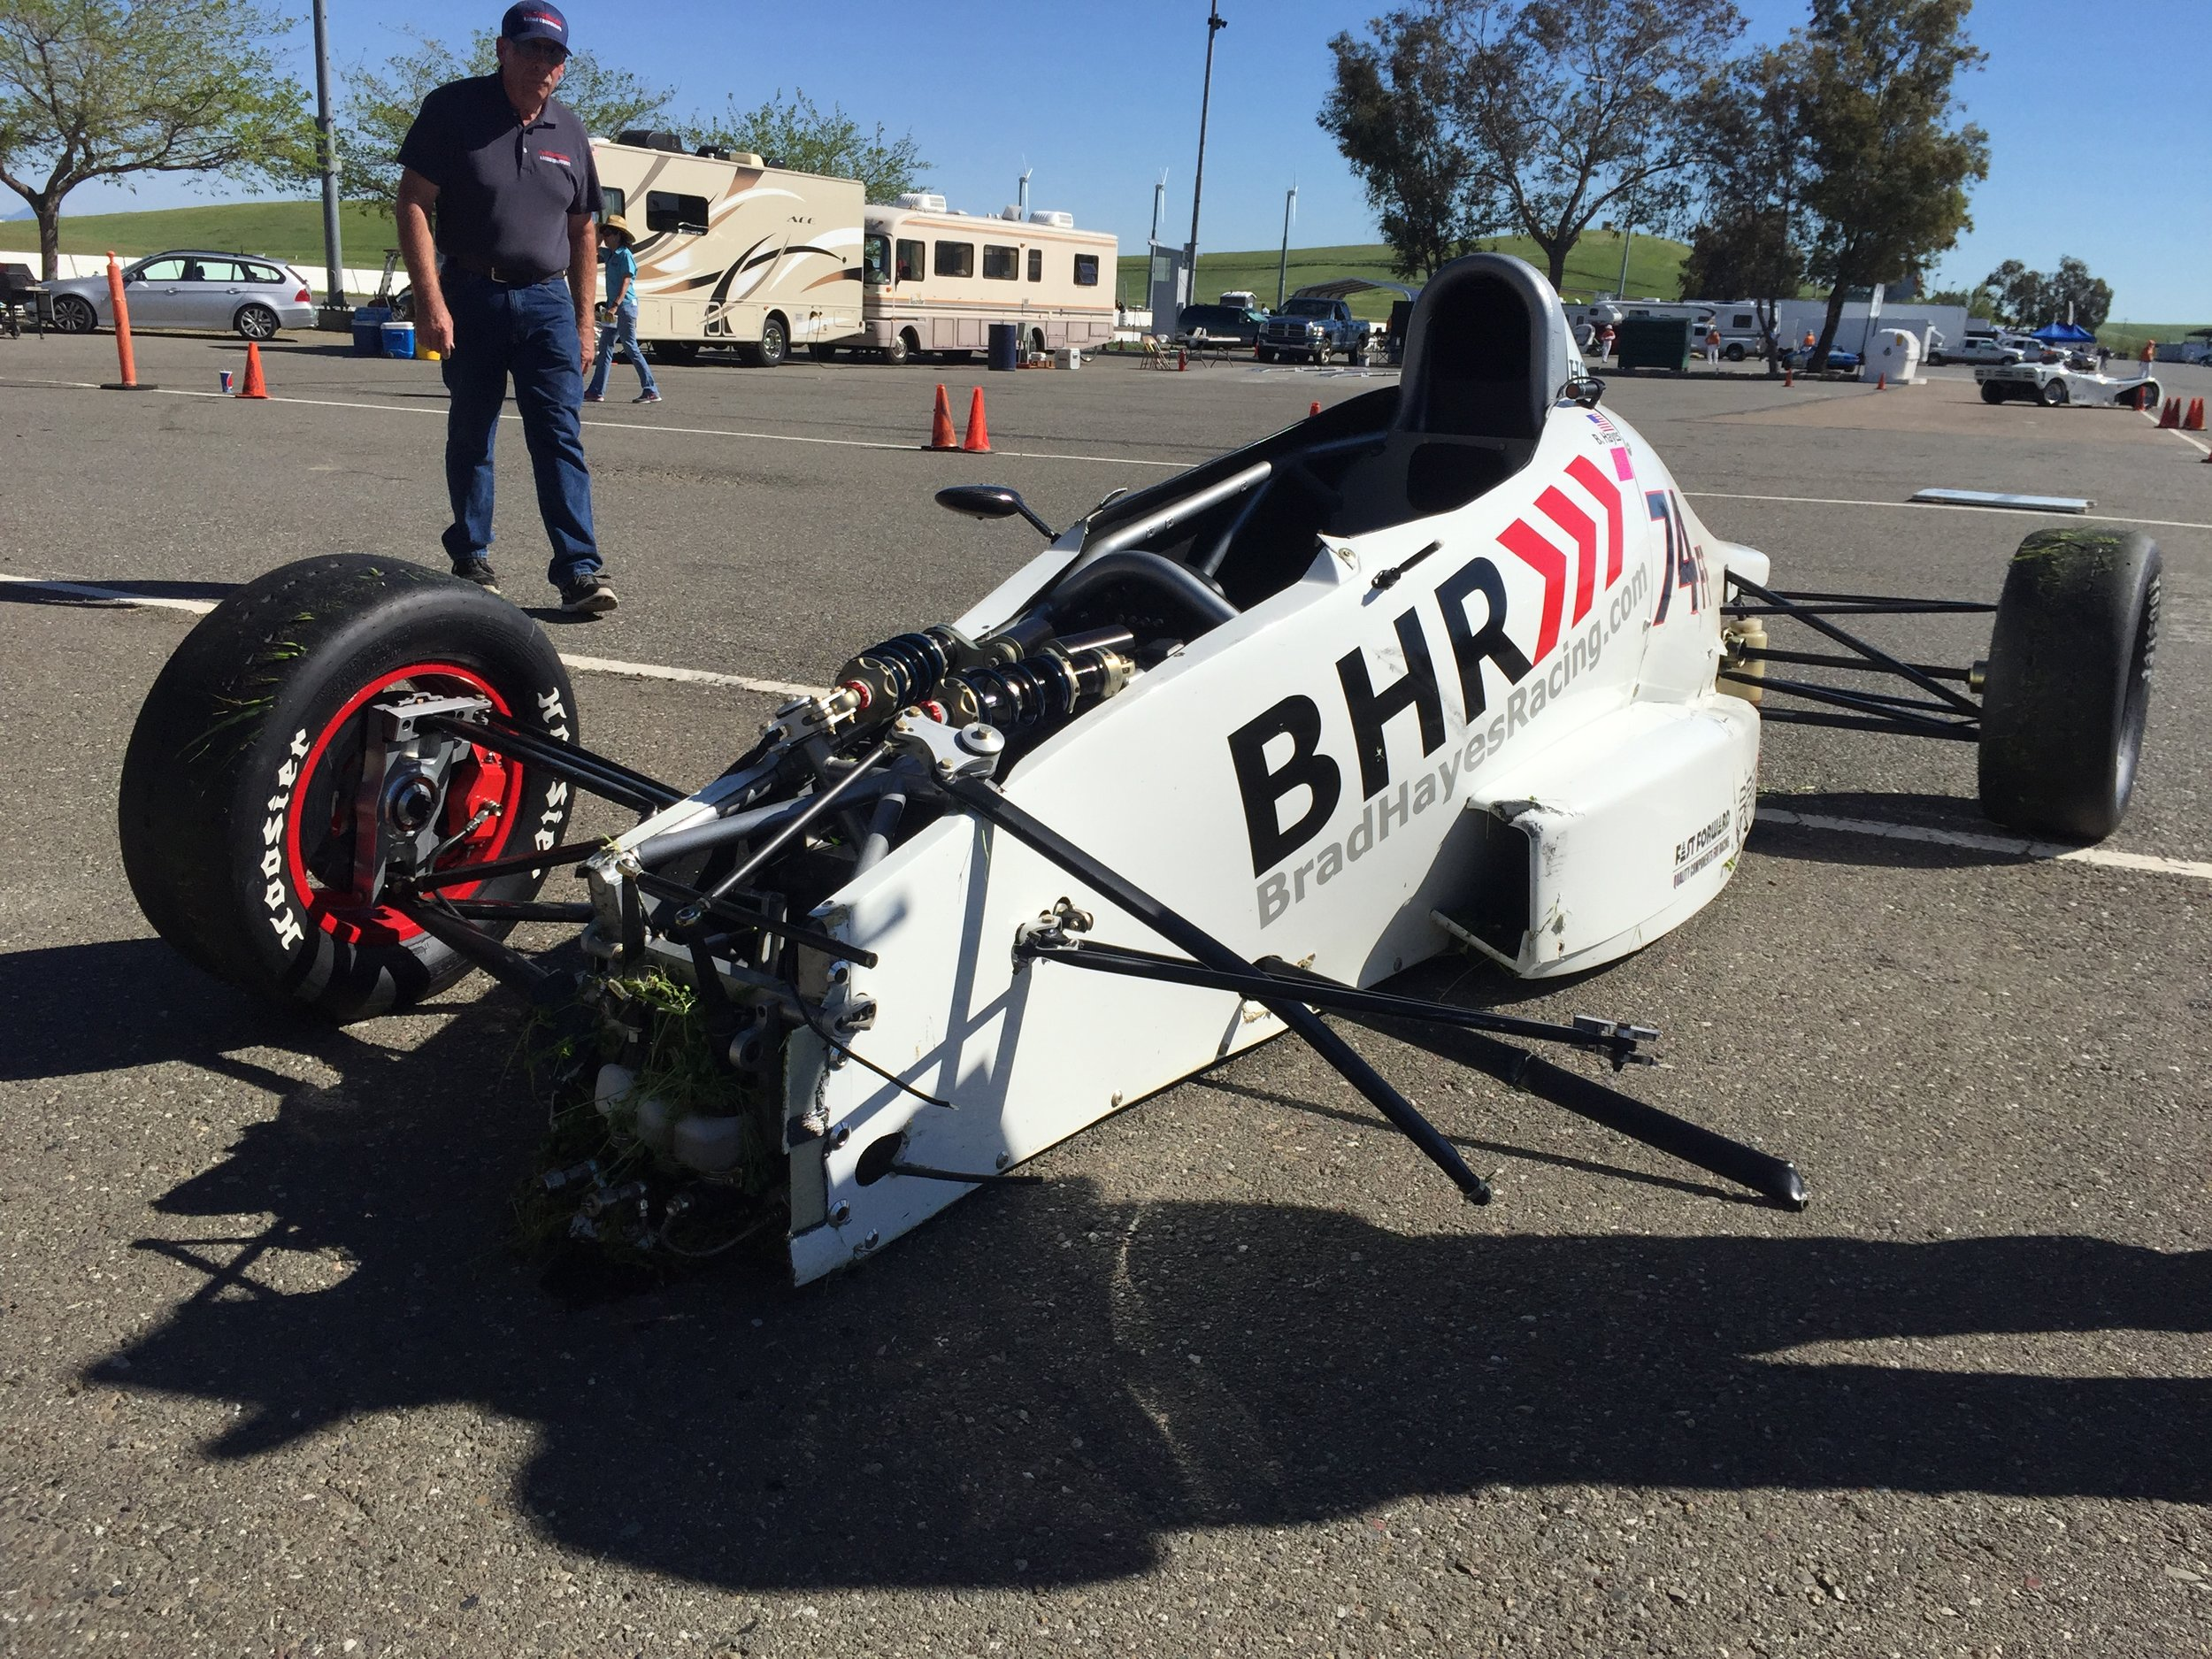 Last year's Thunderhill Major ended with lots of broken parts after a big crash in the Sunday race.